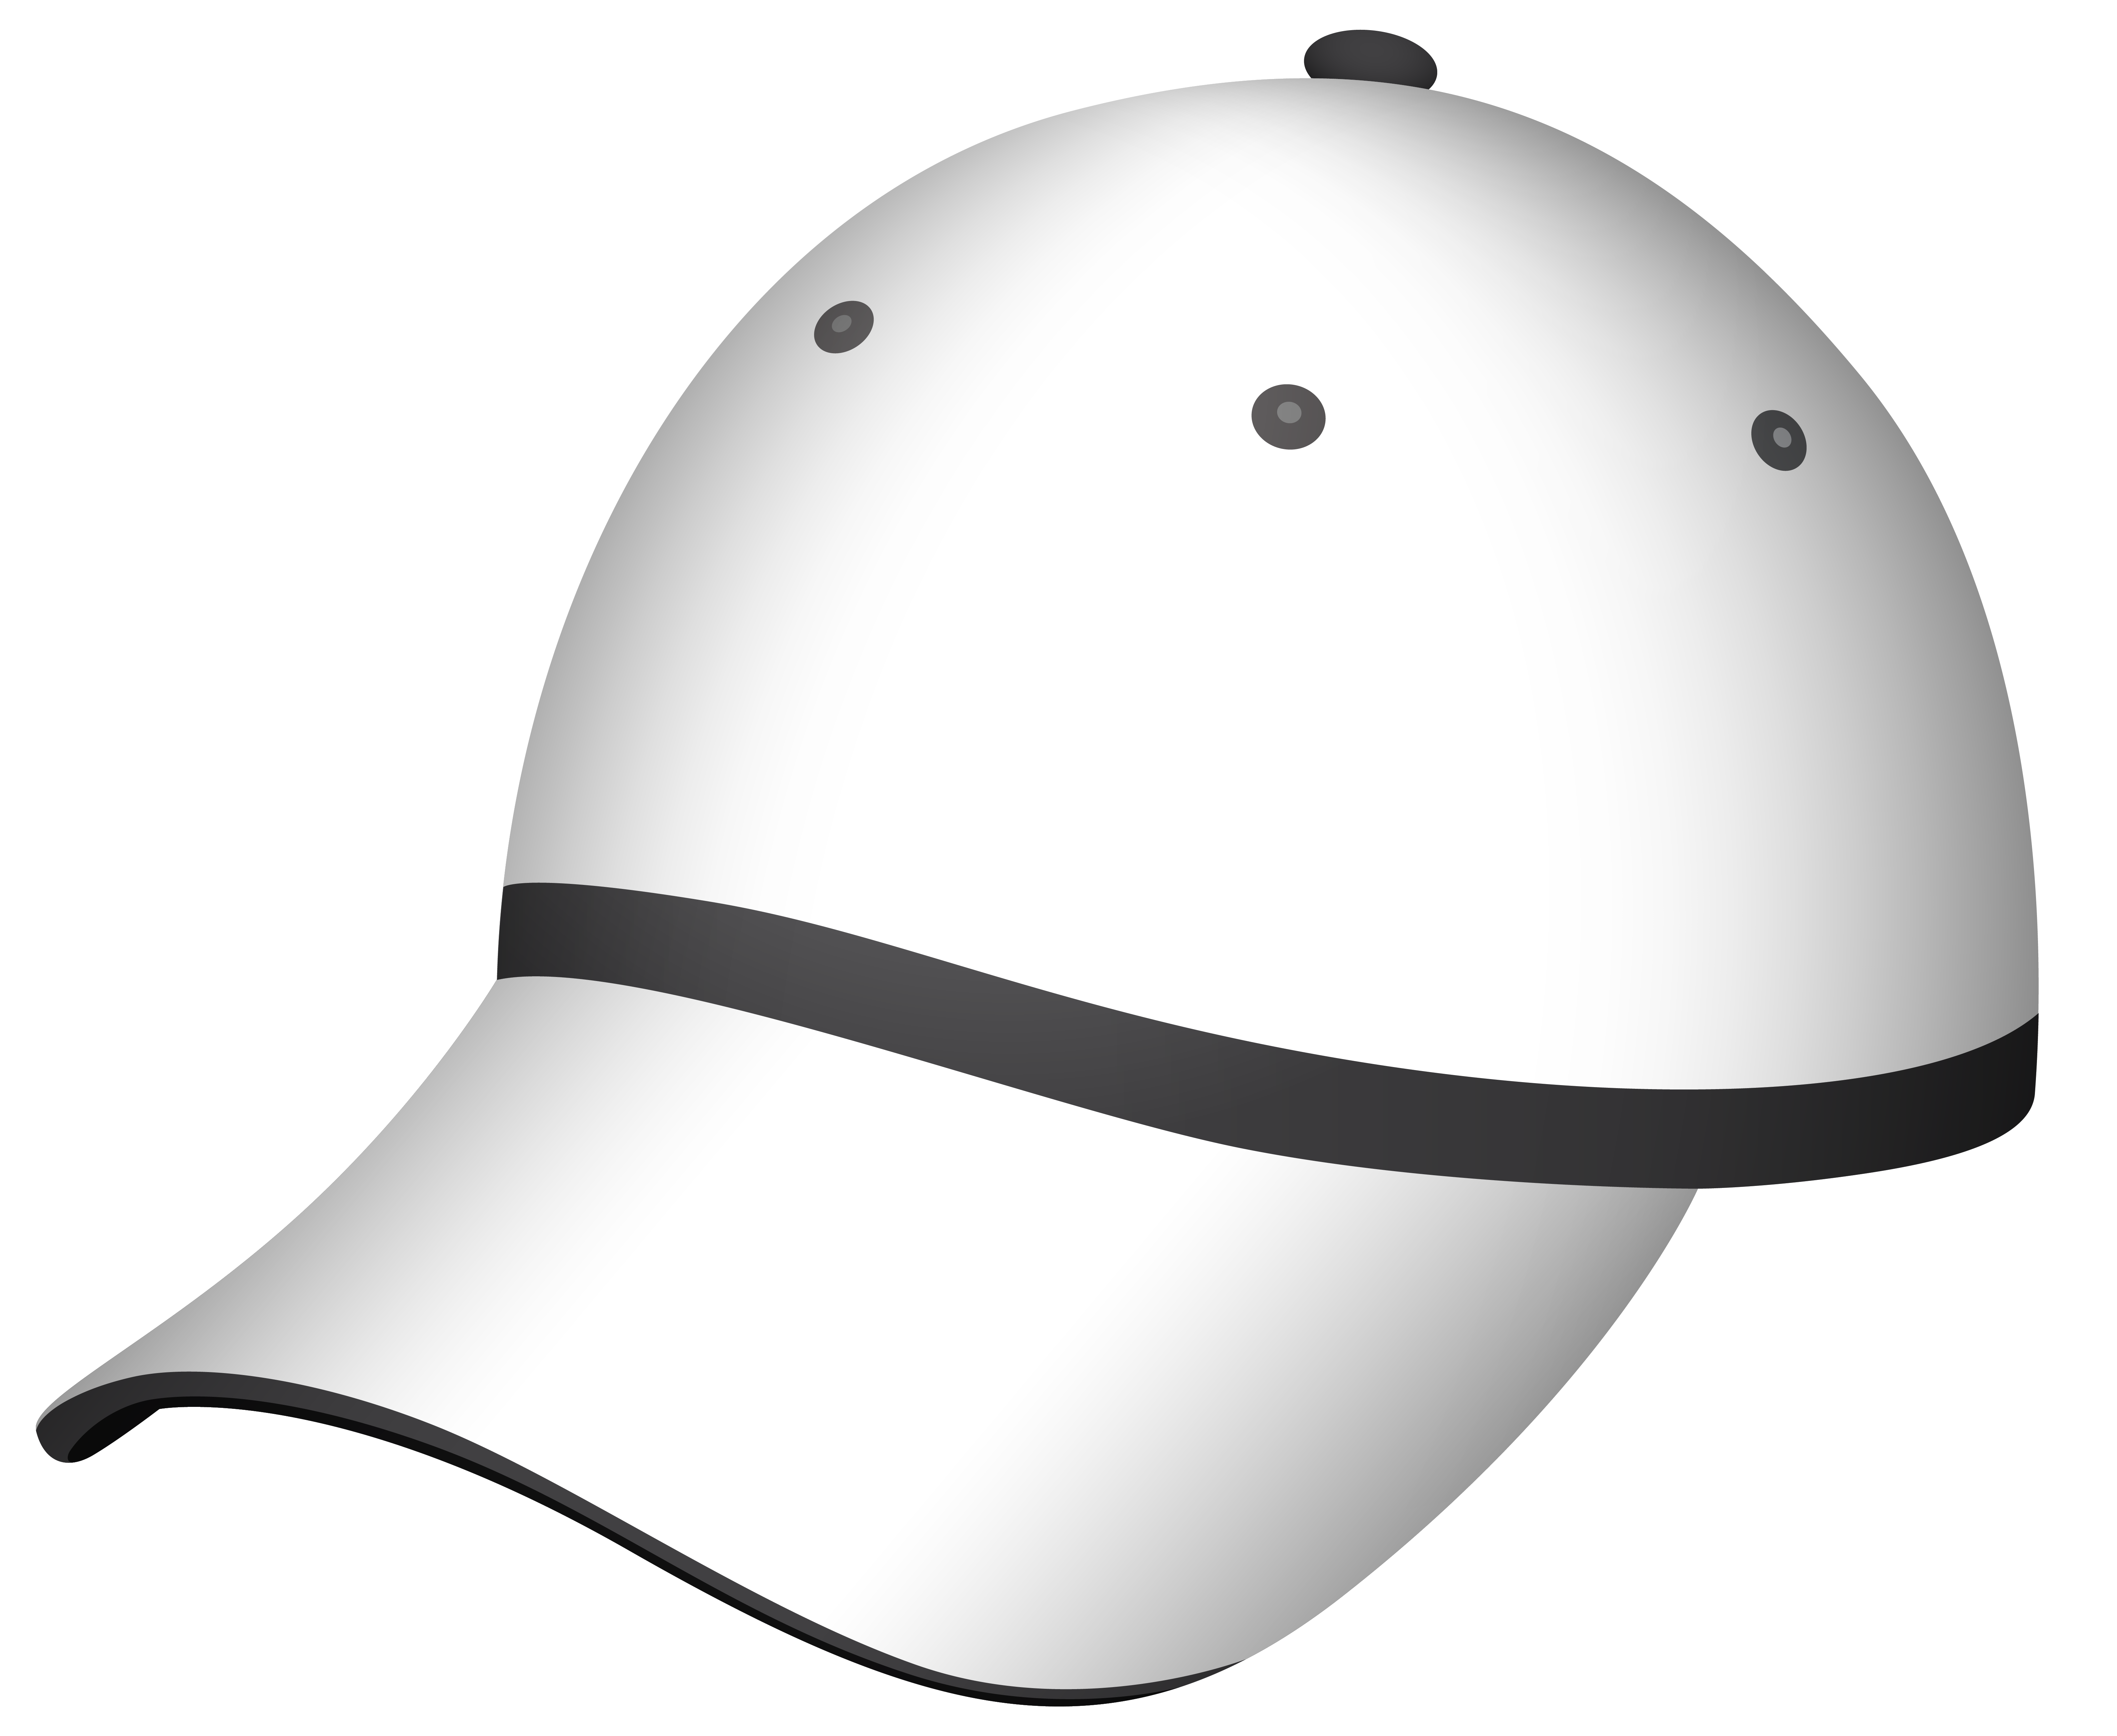 image freeuse download White gray png best. Cap clipart sports material.